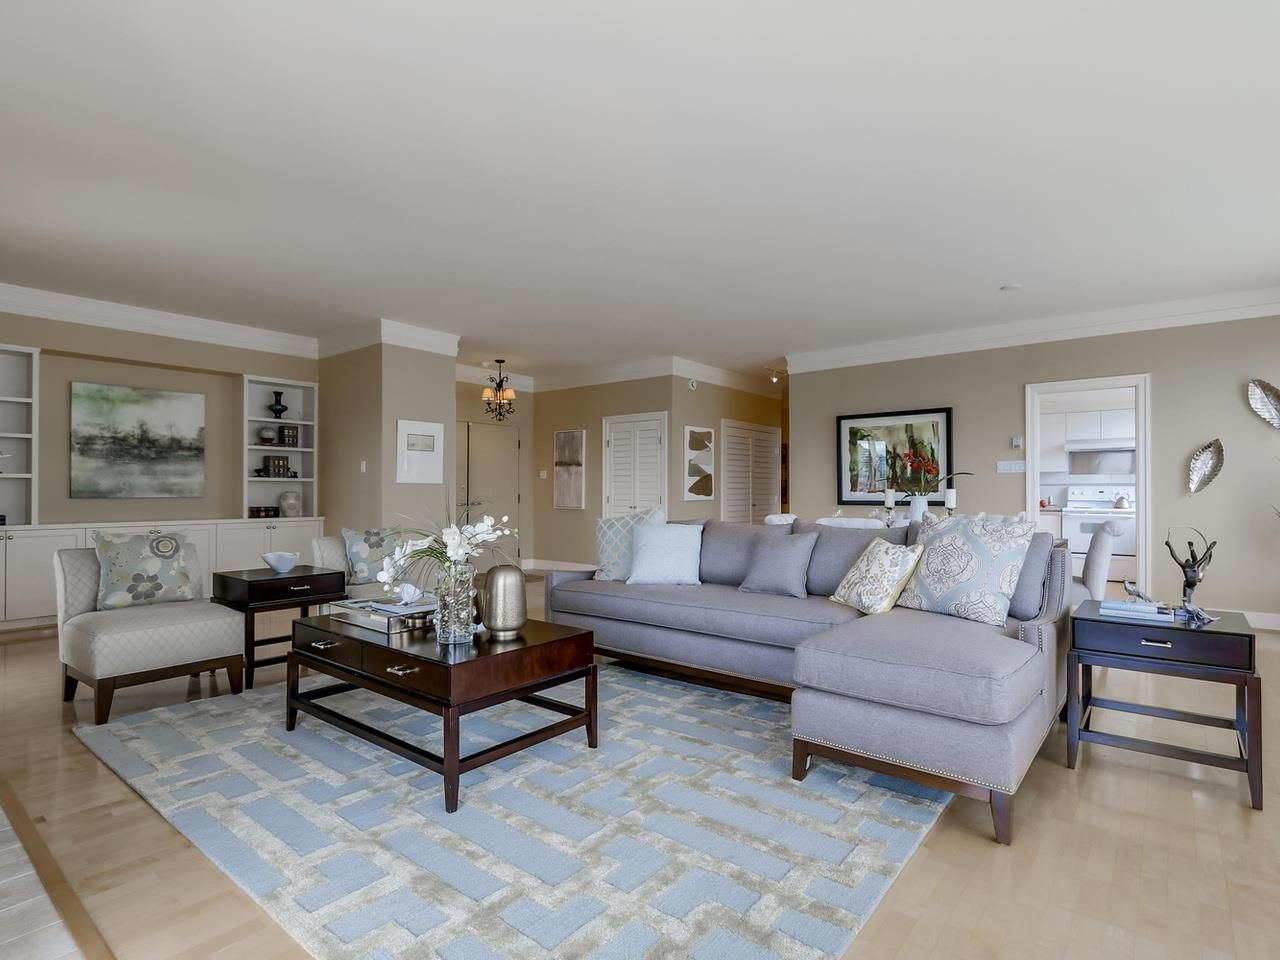 """Photo 4: Photos: 800 1675 HORNBY Street in Vancouver: Yaletown Condo for sale in """"SEAWALK SOUTH"""" (Vancouver West)  : MLS®# R2083569"""